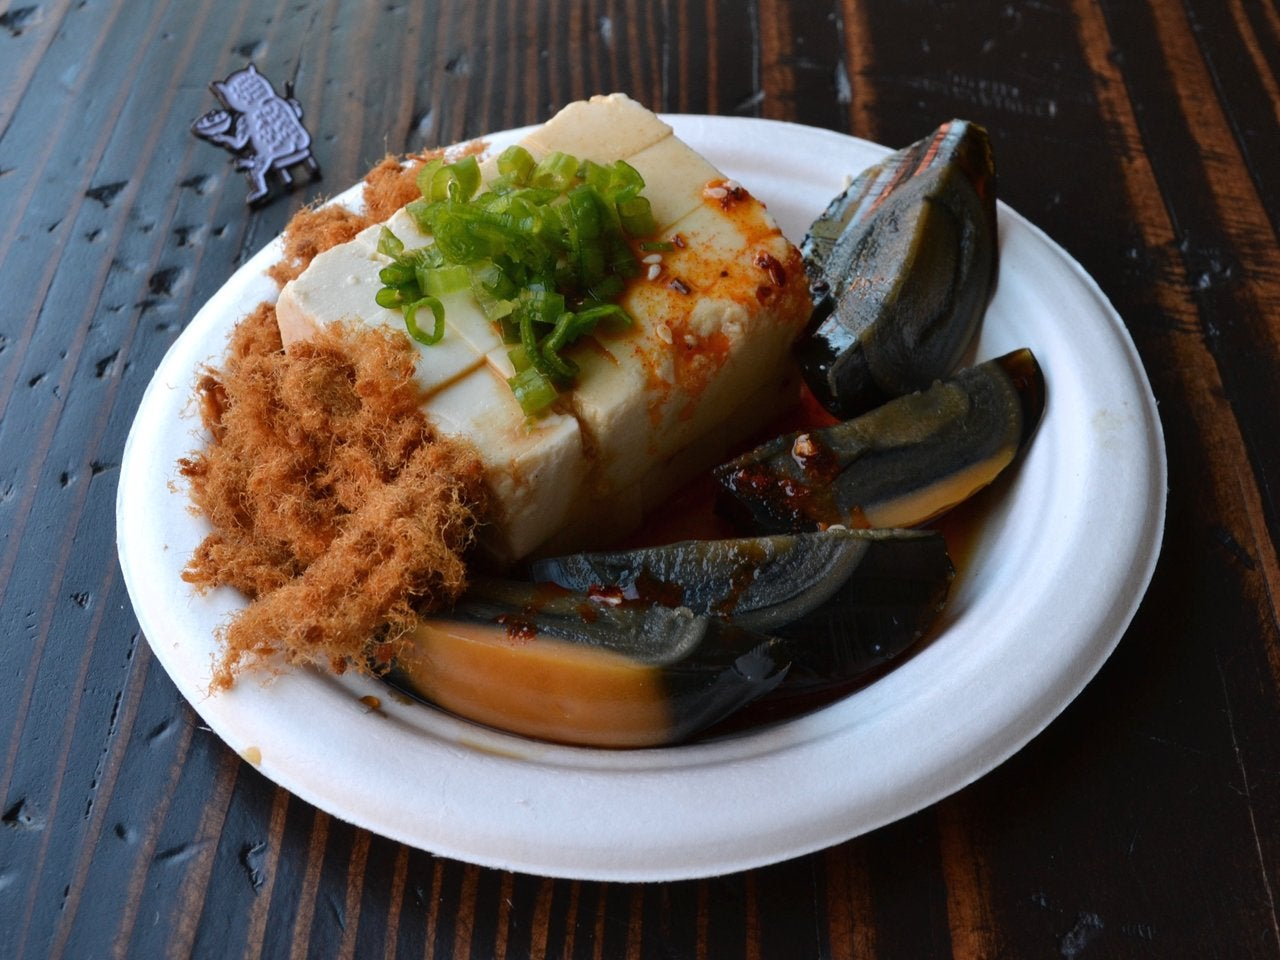 Tofu Century Egg at Lao Tao